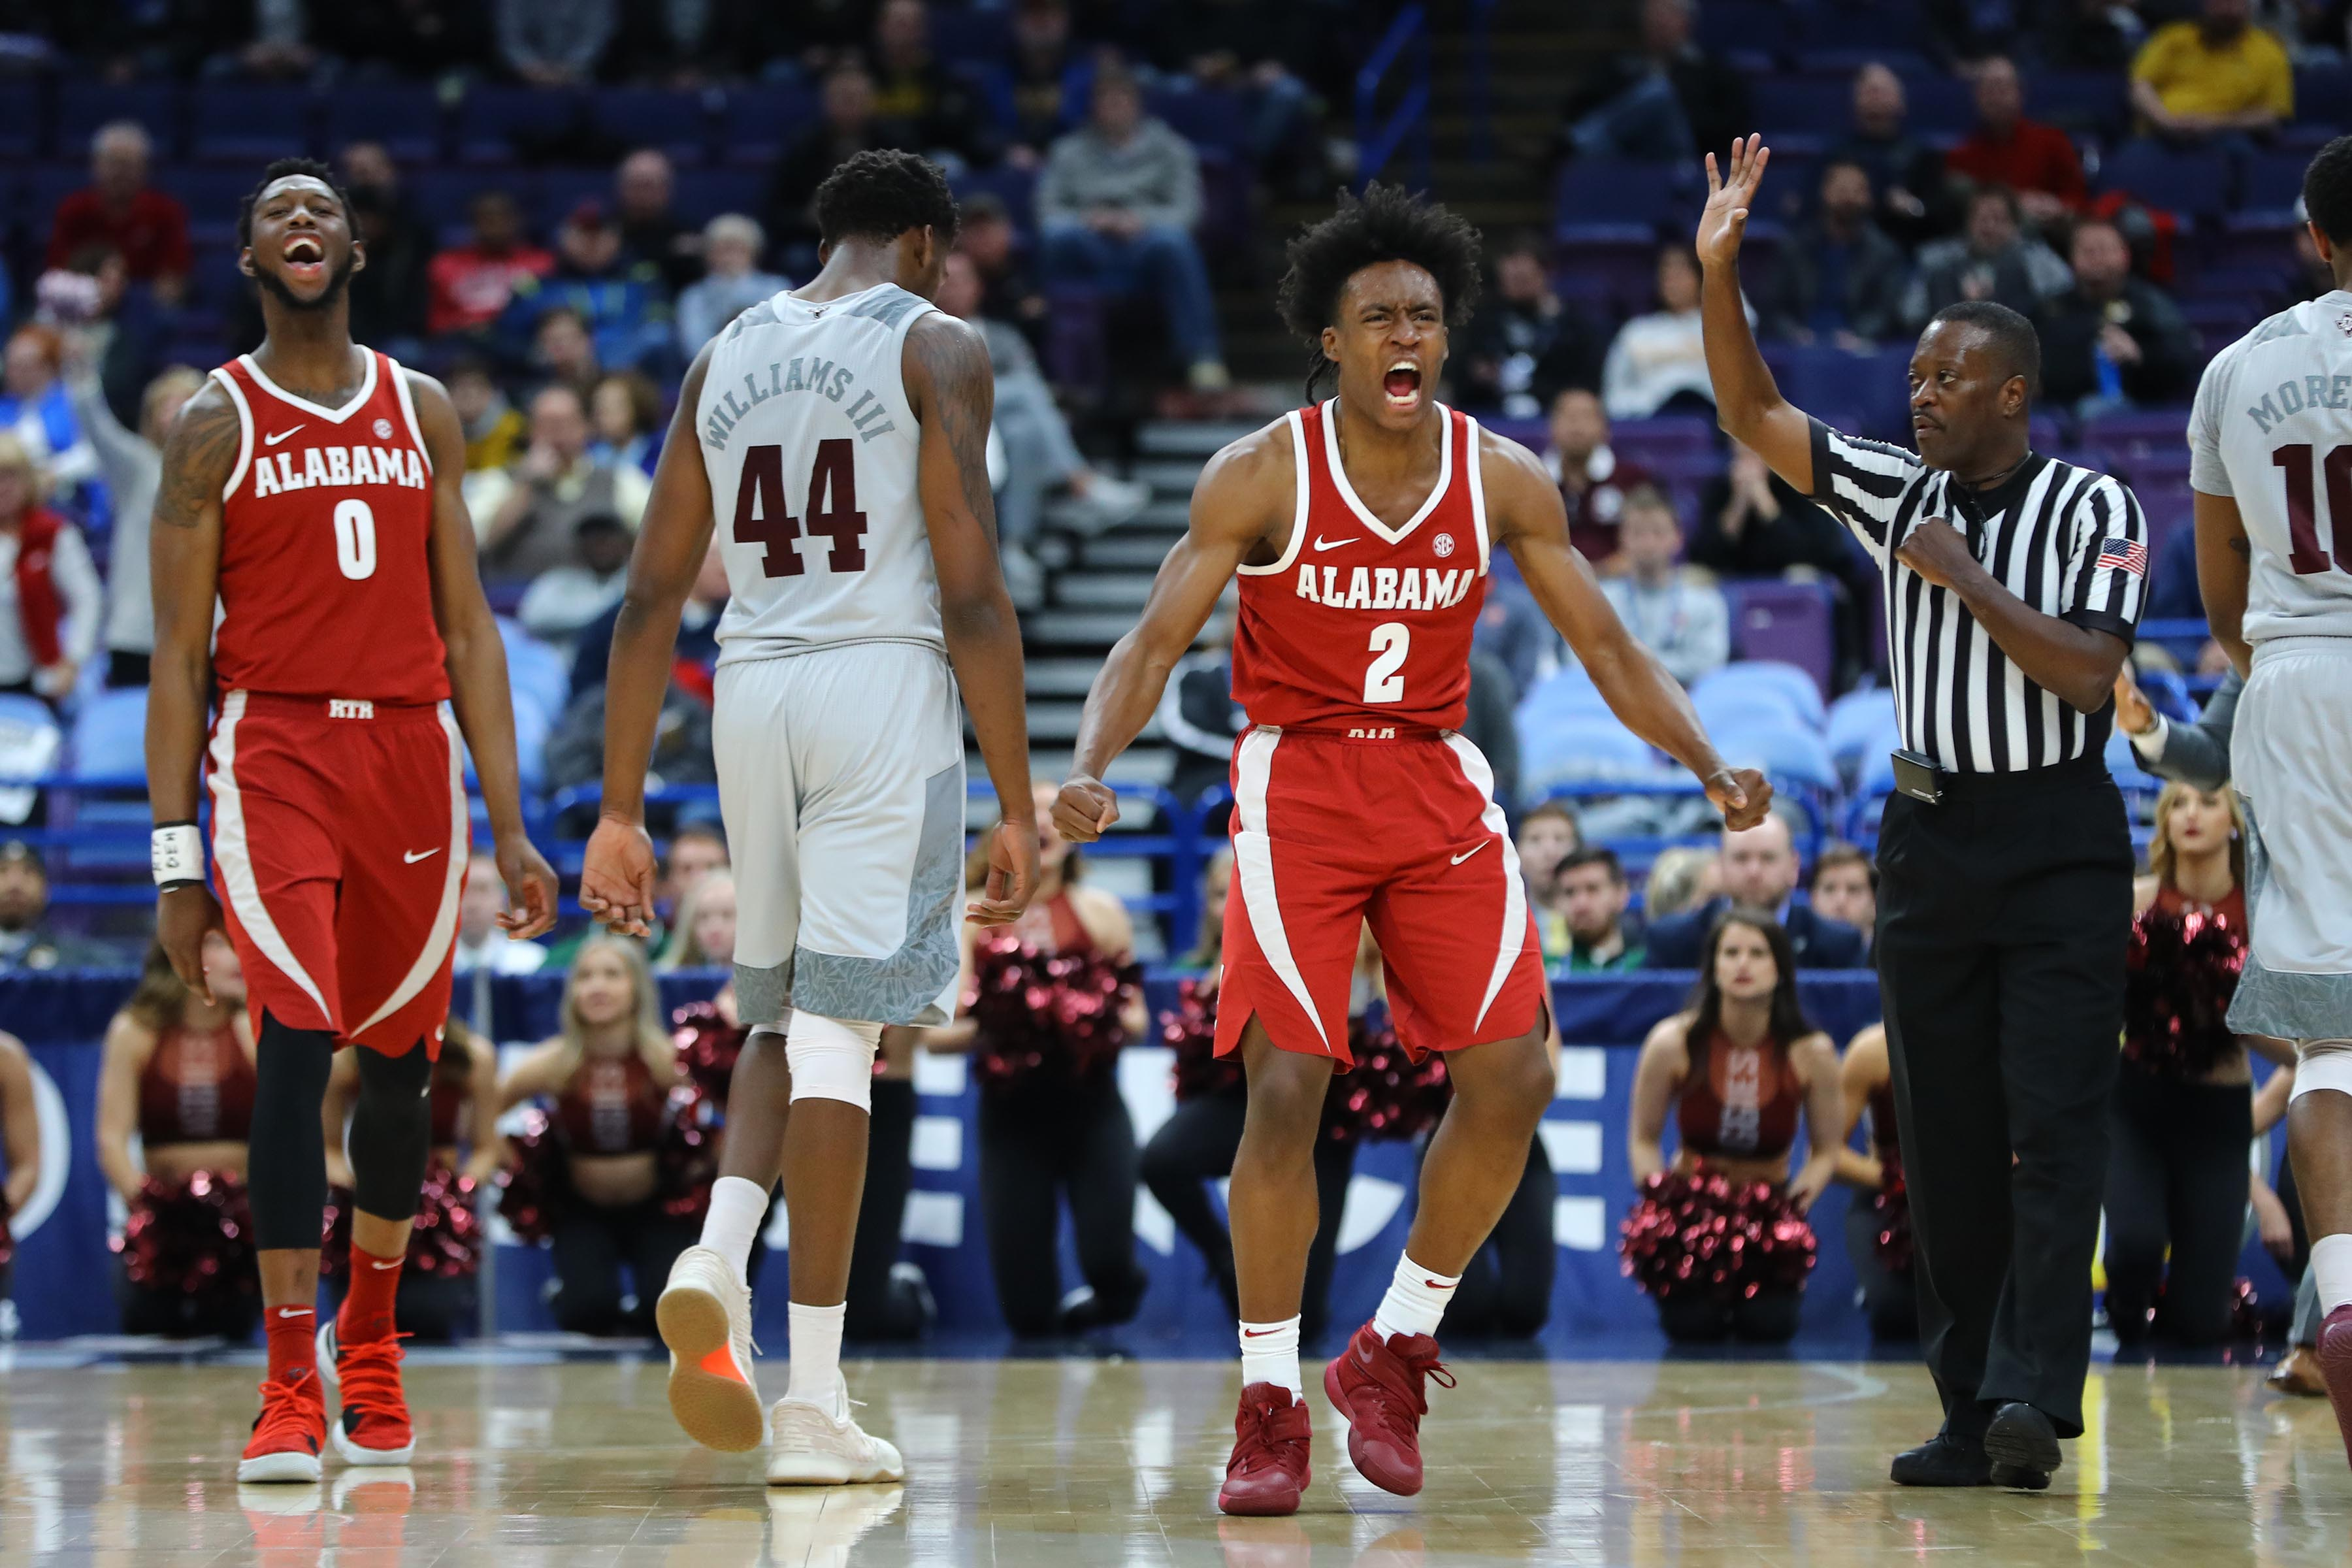 Alabama men's basketball believes it has several players to replace Collin Sexton | NCAA.com